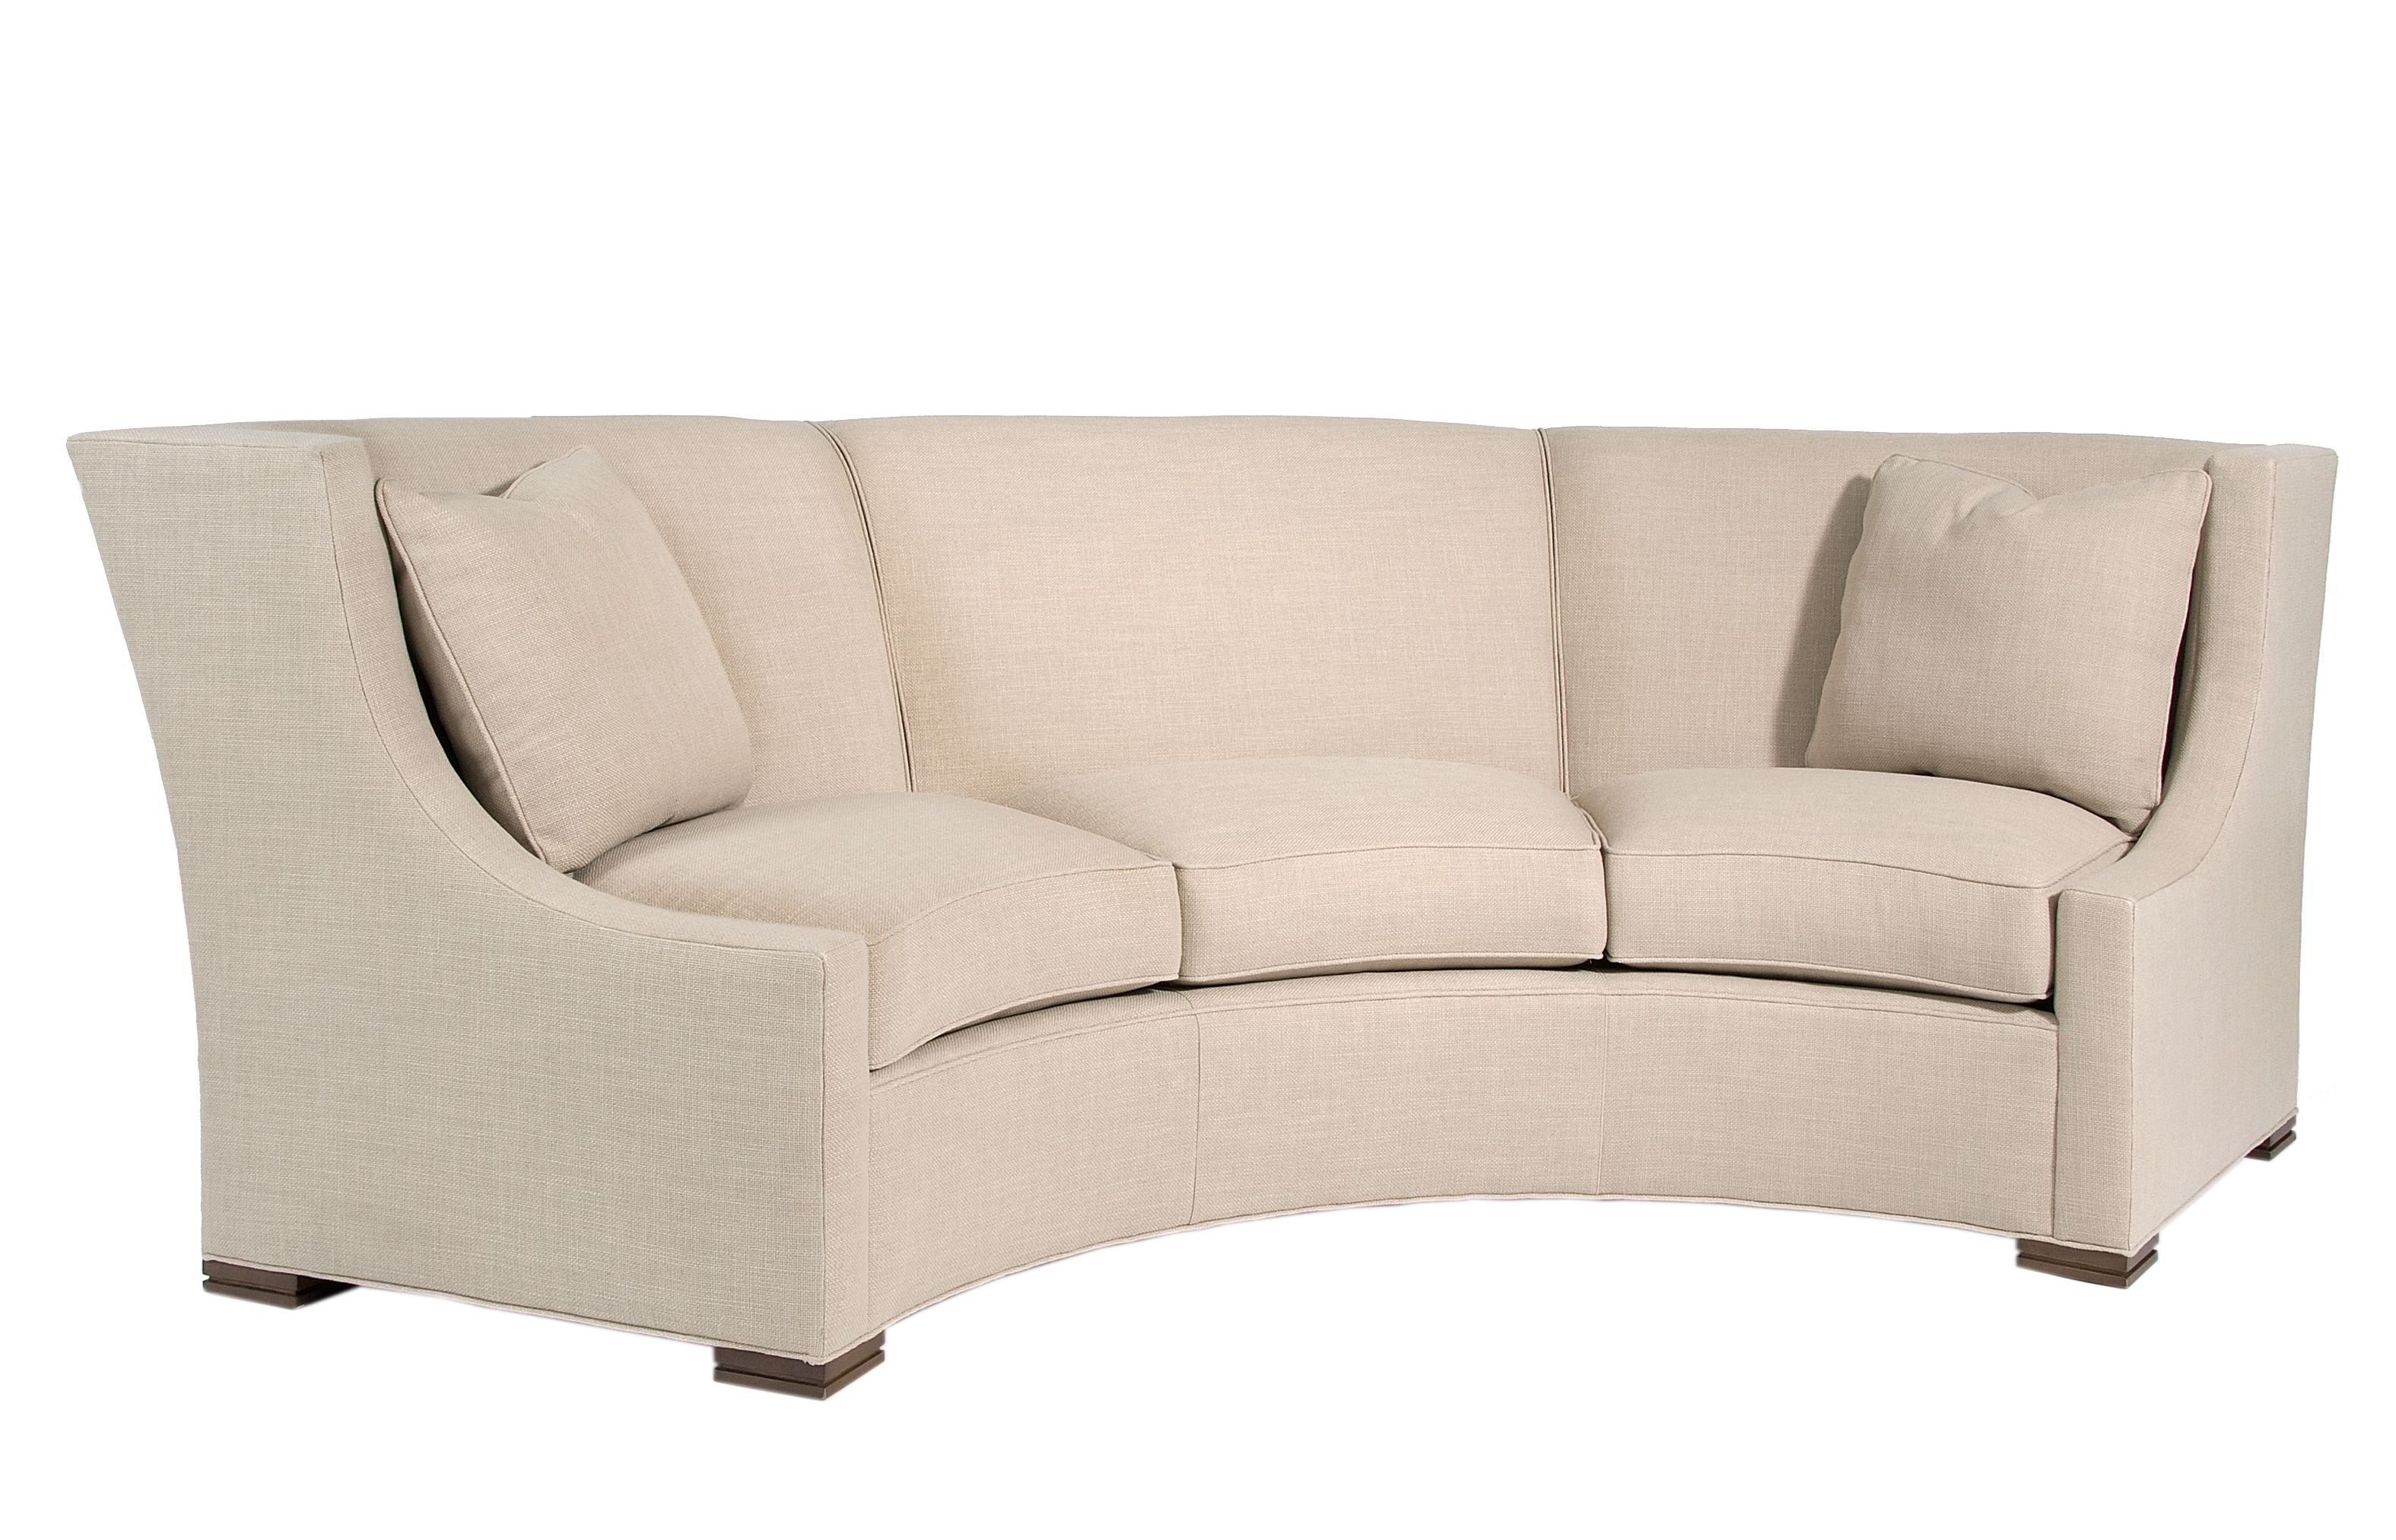 Pearson 2233 3 dramatic curved sofa Great conversational piece Can